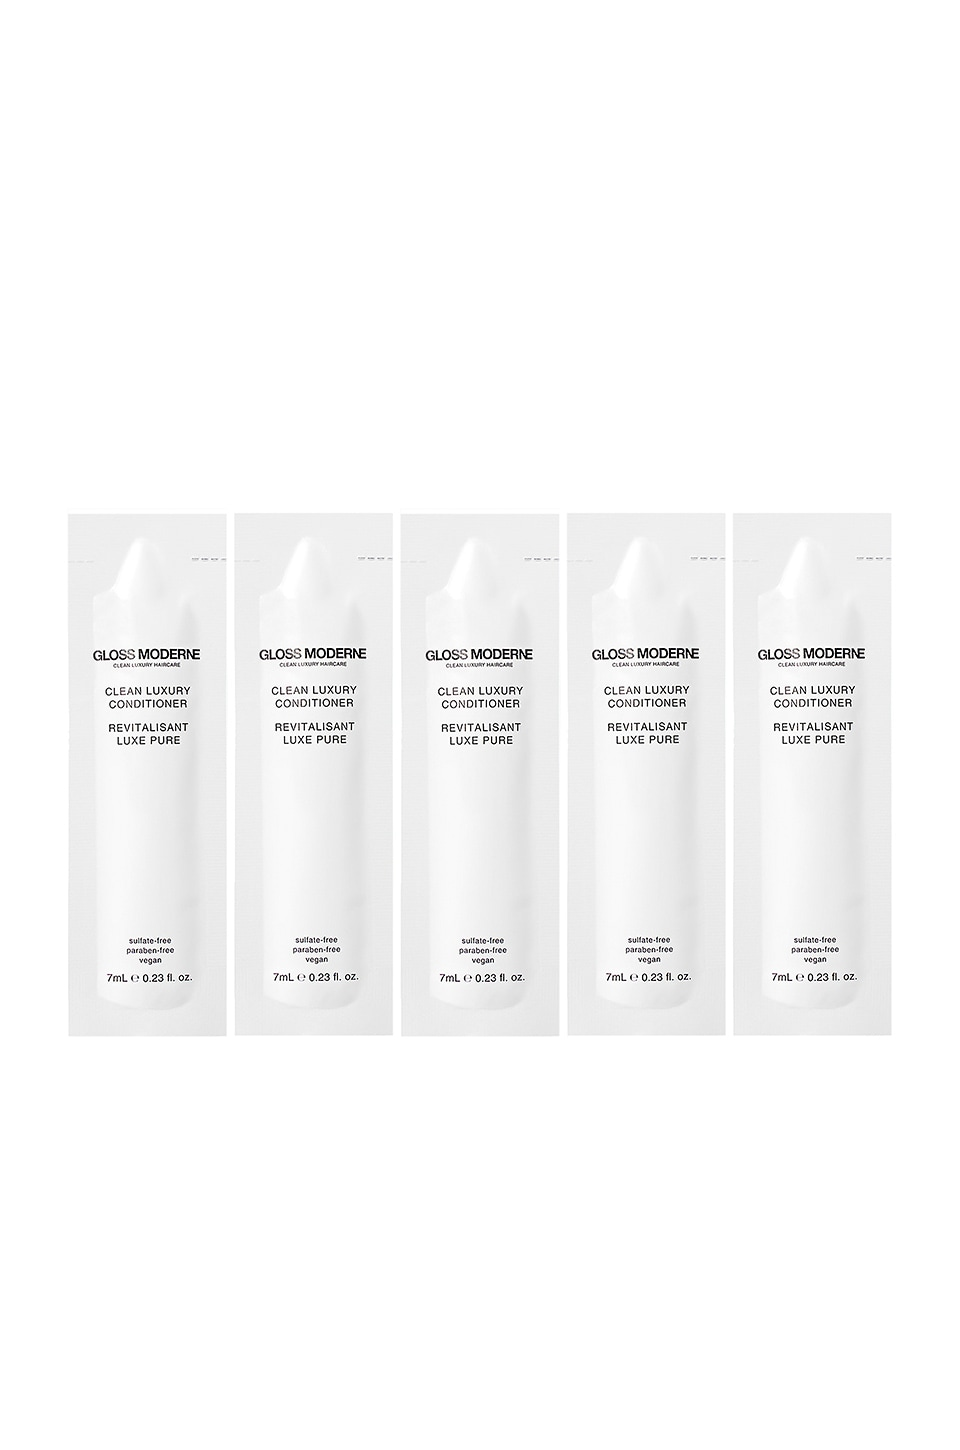 GLOSS MODERNE Clean Luxury Travel Conditioner 5 Pack